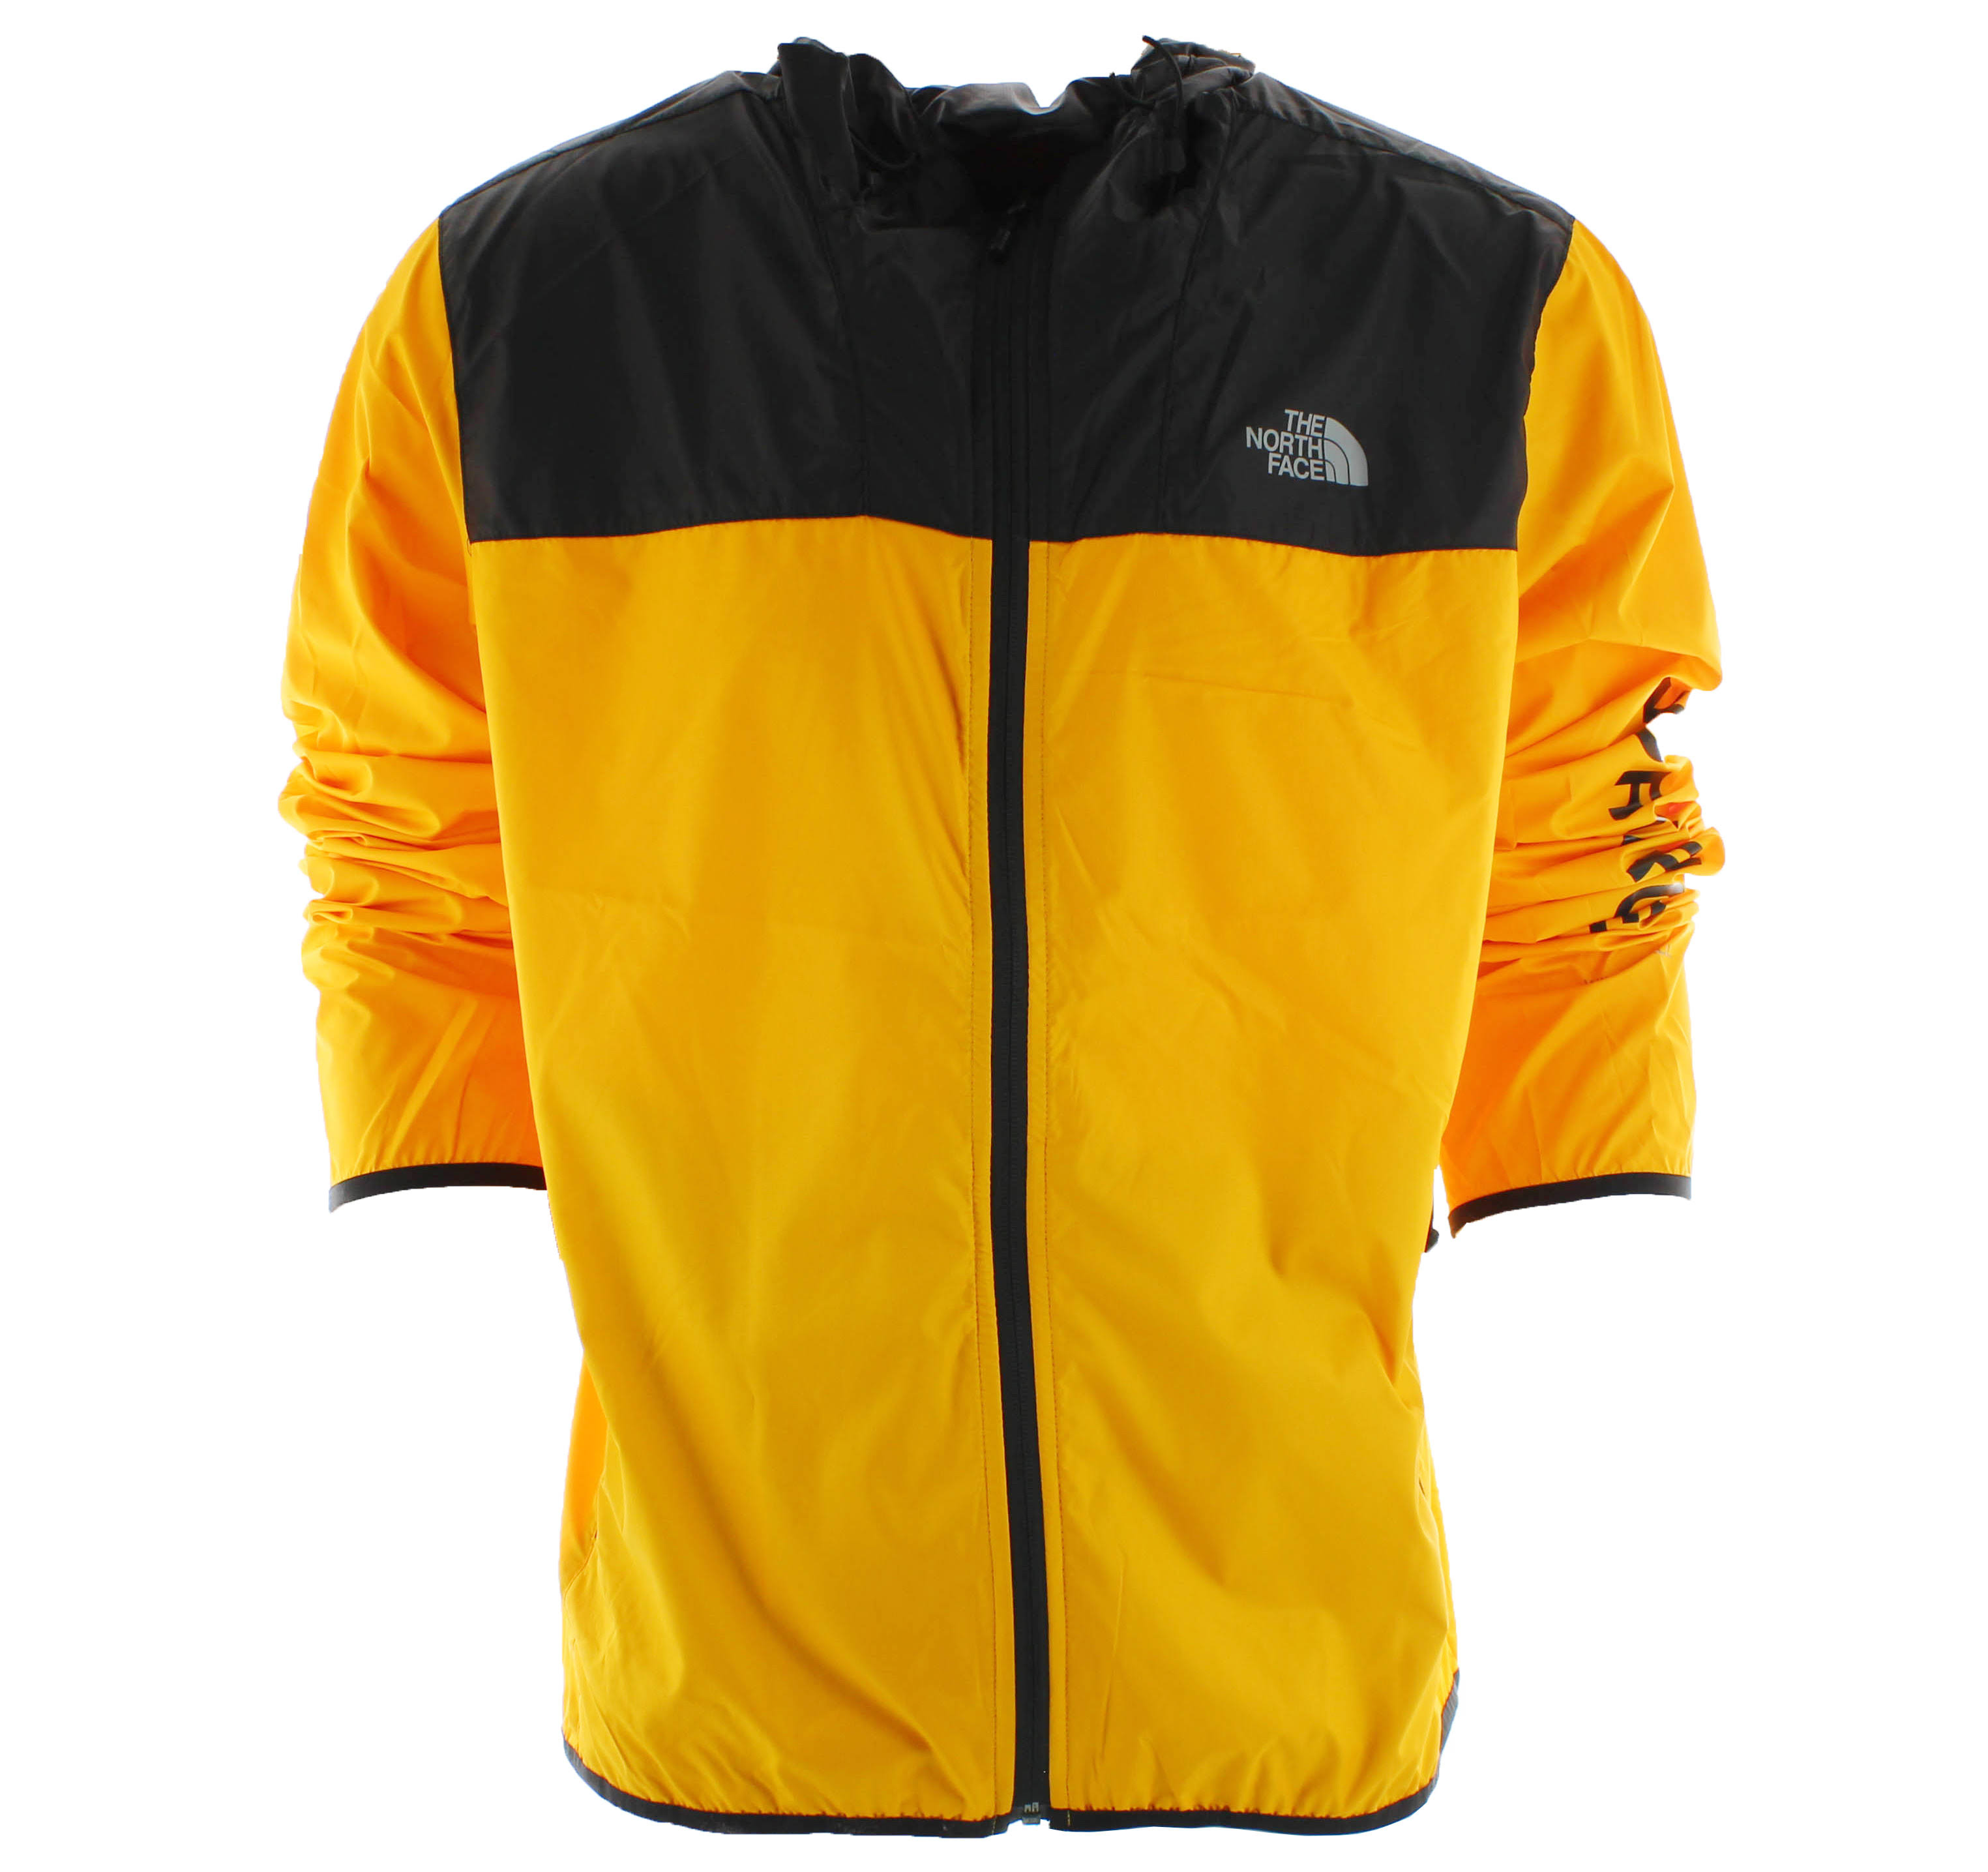 The Amarillo Men's Face Chaqueta North 2 L Novelty Cyclone 0 1rn1x8qp